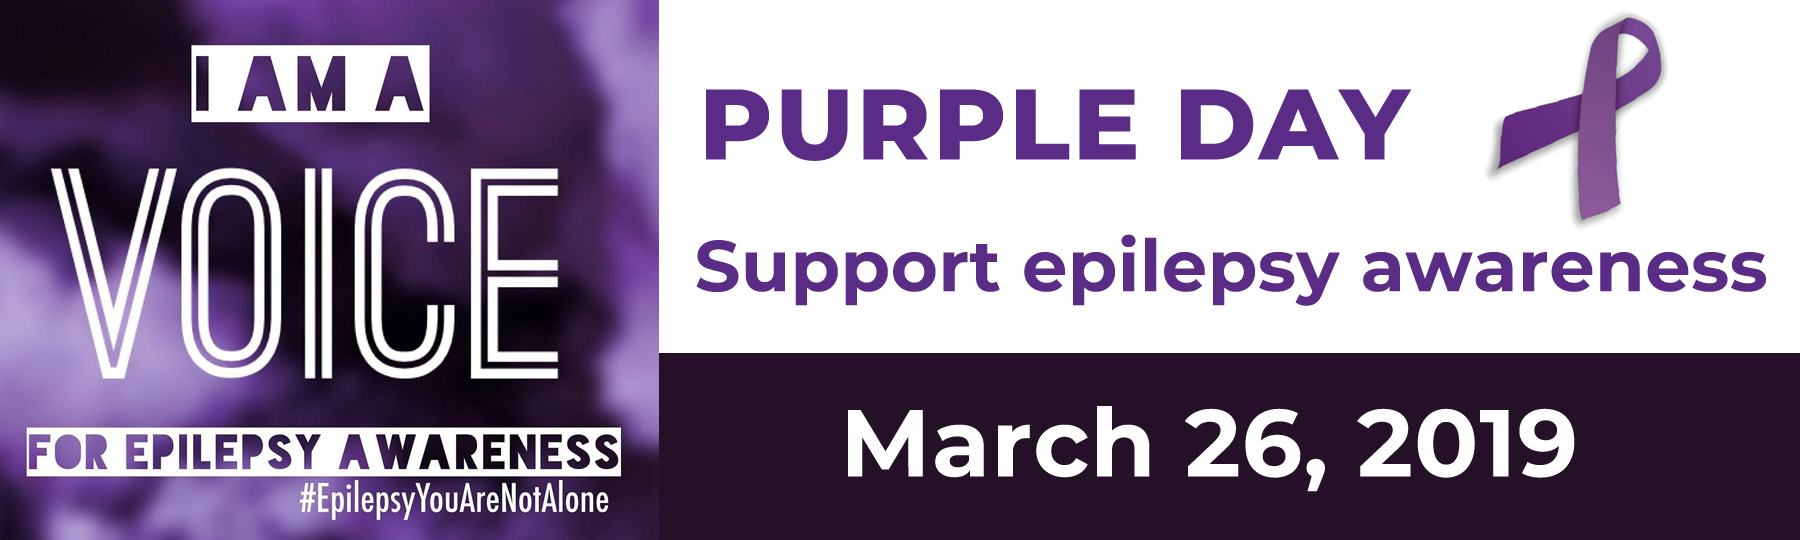 wear purple day 2019